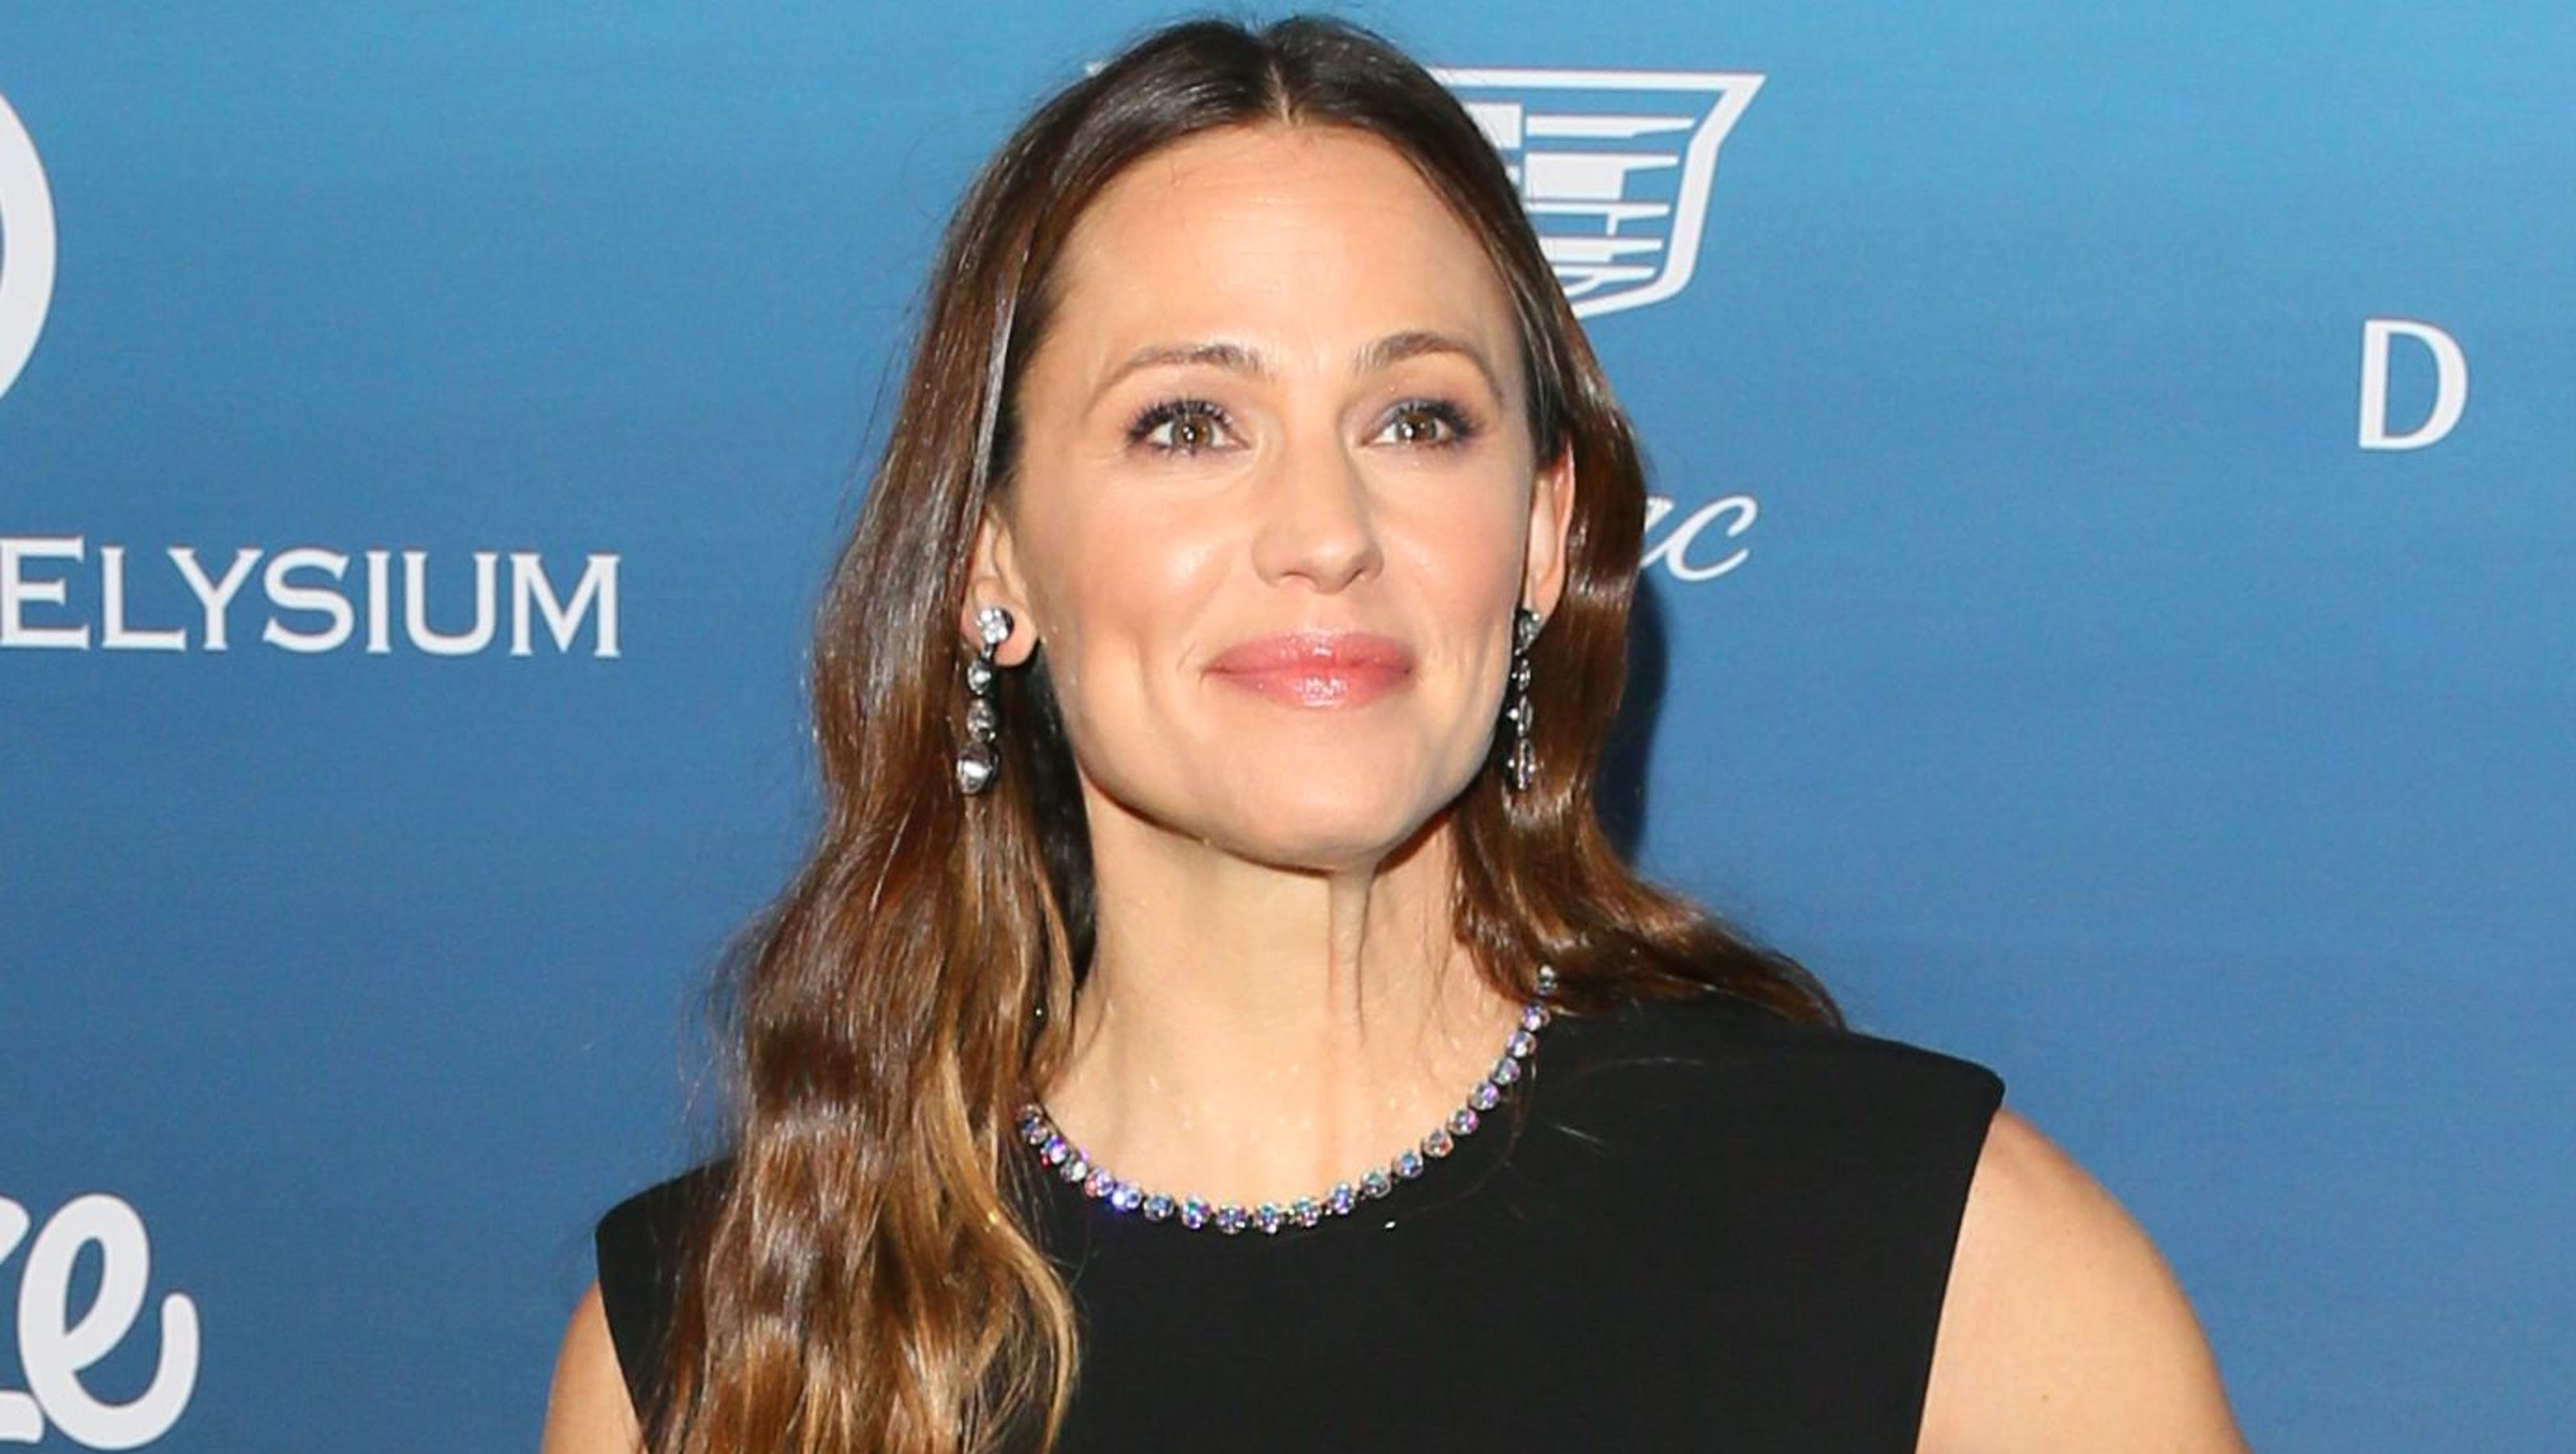 Jennifer Garner plays dress-up for son's birthday and finds out she's 'not that cool'